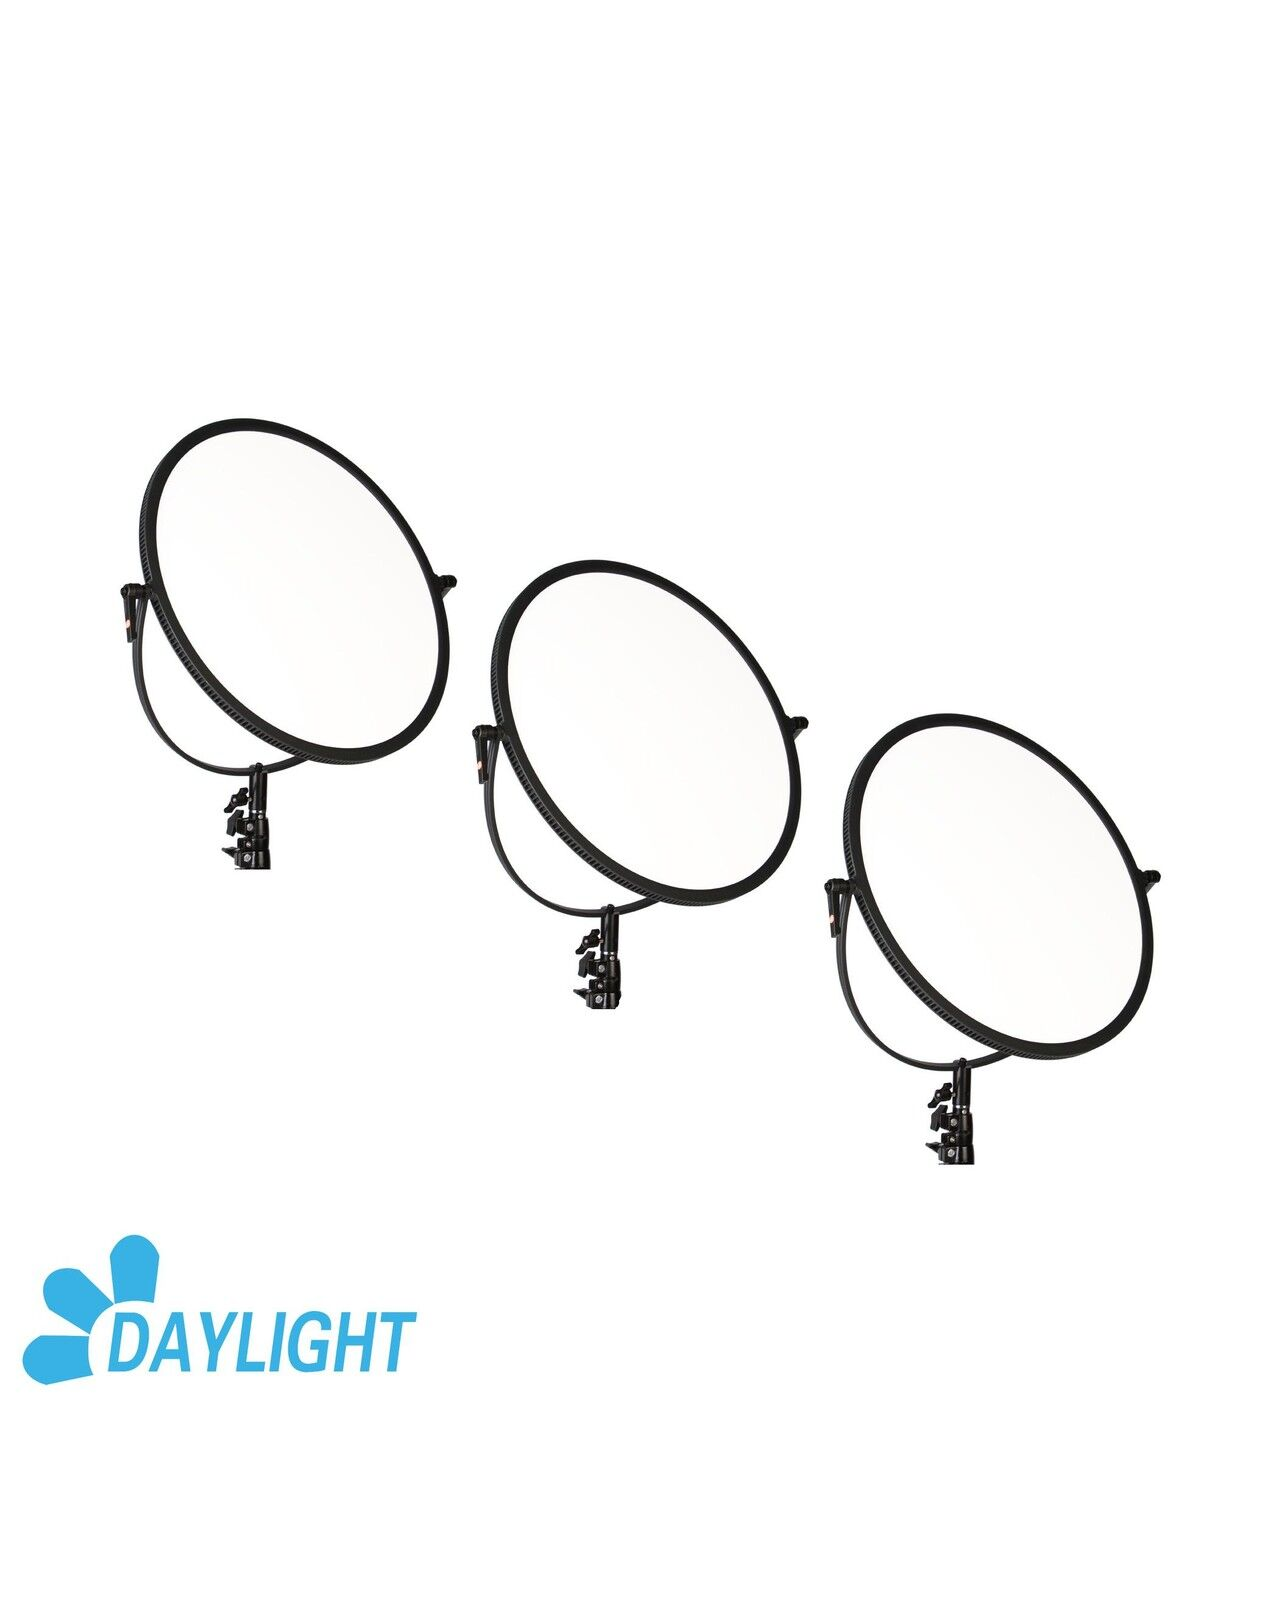 CAME-TV C700D Daylight LED Edge Light (3 Pieces Set) Led Video Light